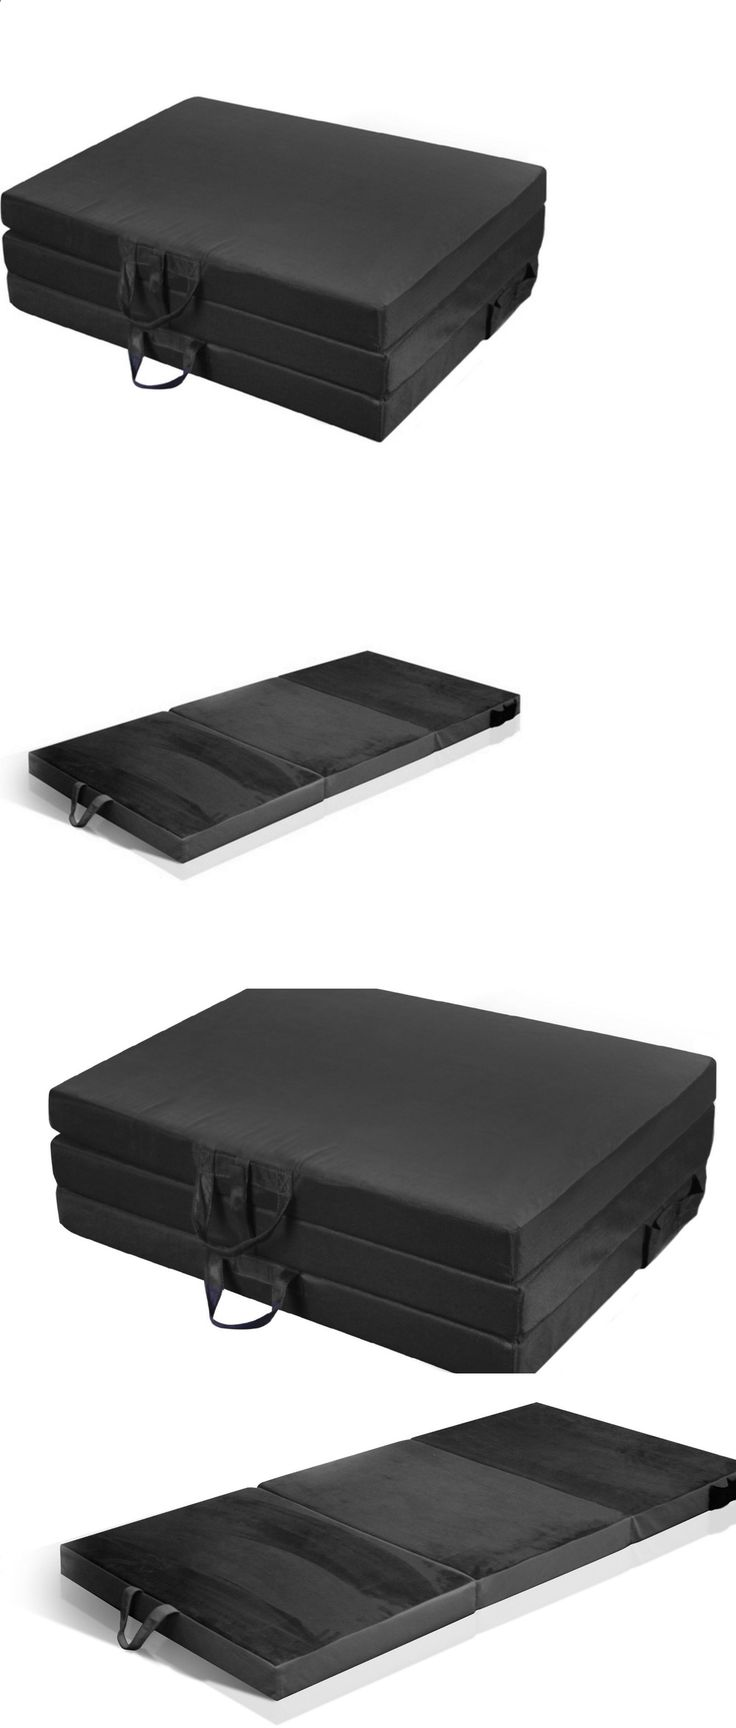 Camping Sleeping Pad - Mattresses and Pads 36114: Sleeping Pads For Camping Folding Futon Mattress Pad Twin Foam Backpacking Bed -> BUY IT NOW ONLY: $94.75 on eBay!